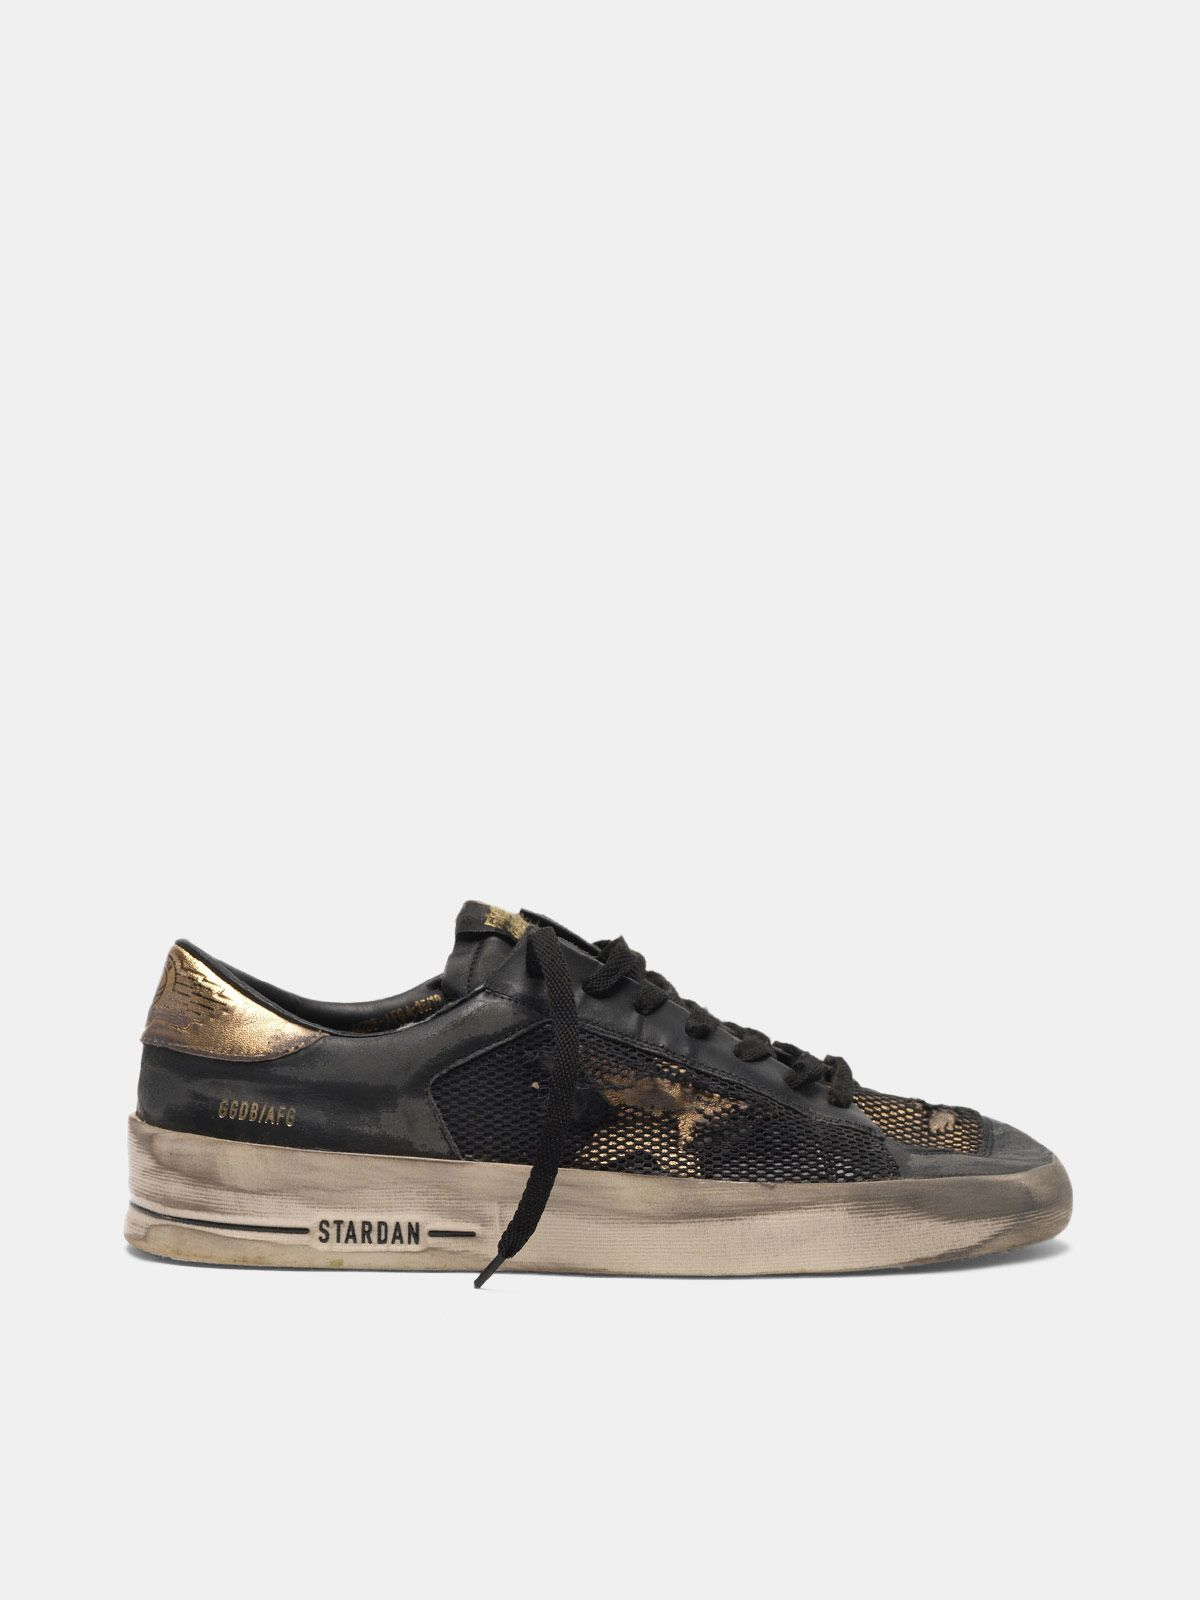 Golden Goose - Sneakers Stardan LTD in pelle con inserti in mesh distressed  in